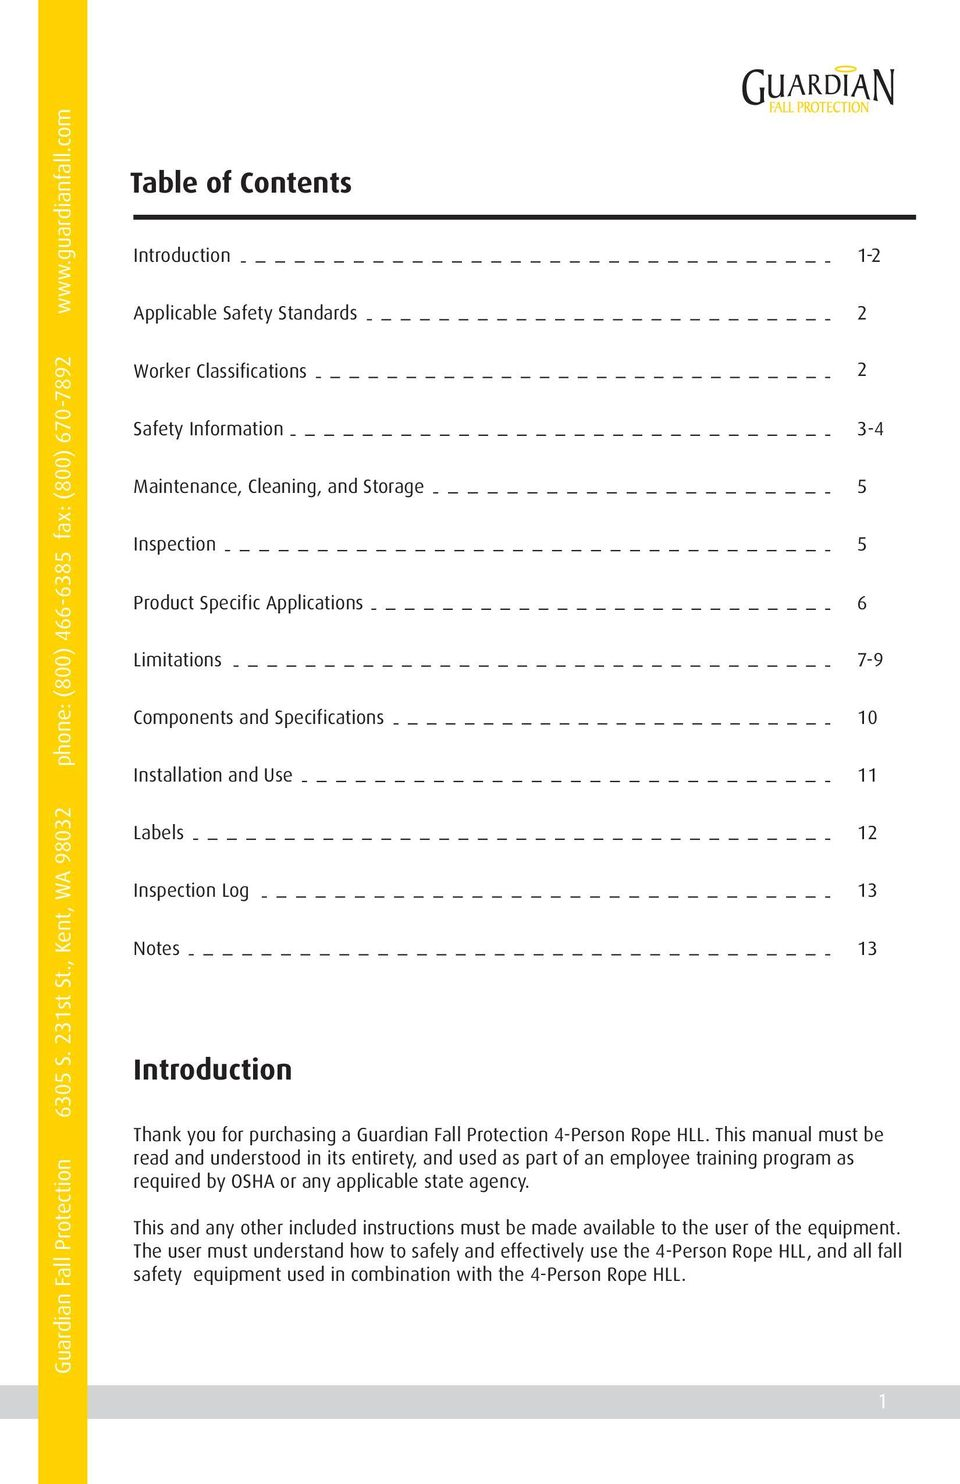 Limitations 7-9 Components and Specifications 10 Installation and Use 11 Labels 12 Inspection Log 13 Notes 13 Introduction Thank you for purchasing a Guardian Fall Protection 4-Person Rope HLL.